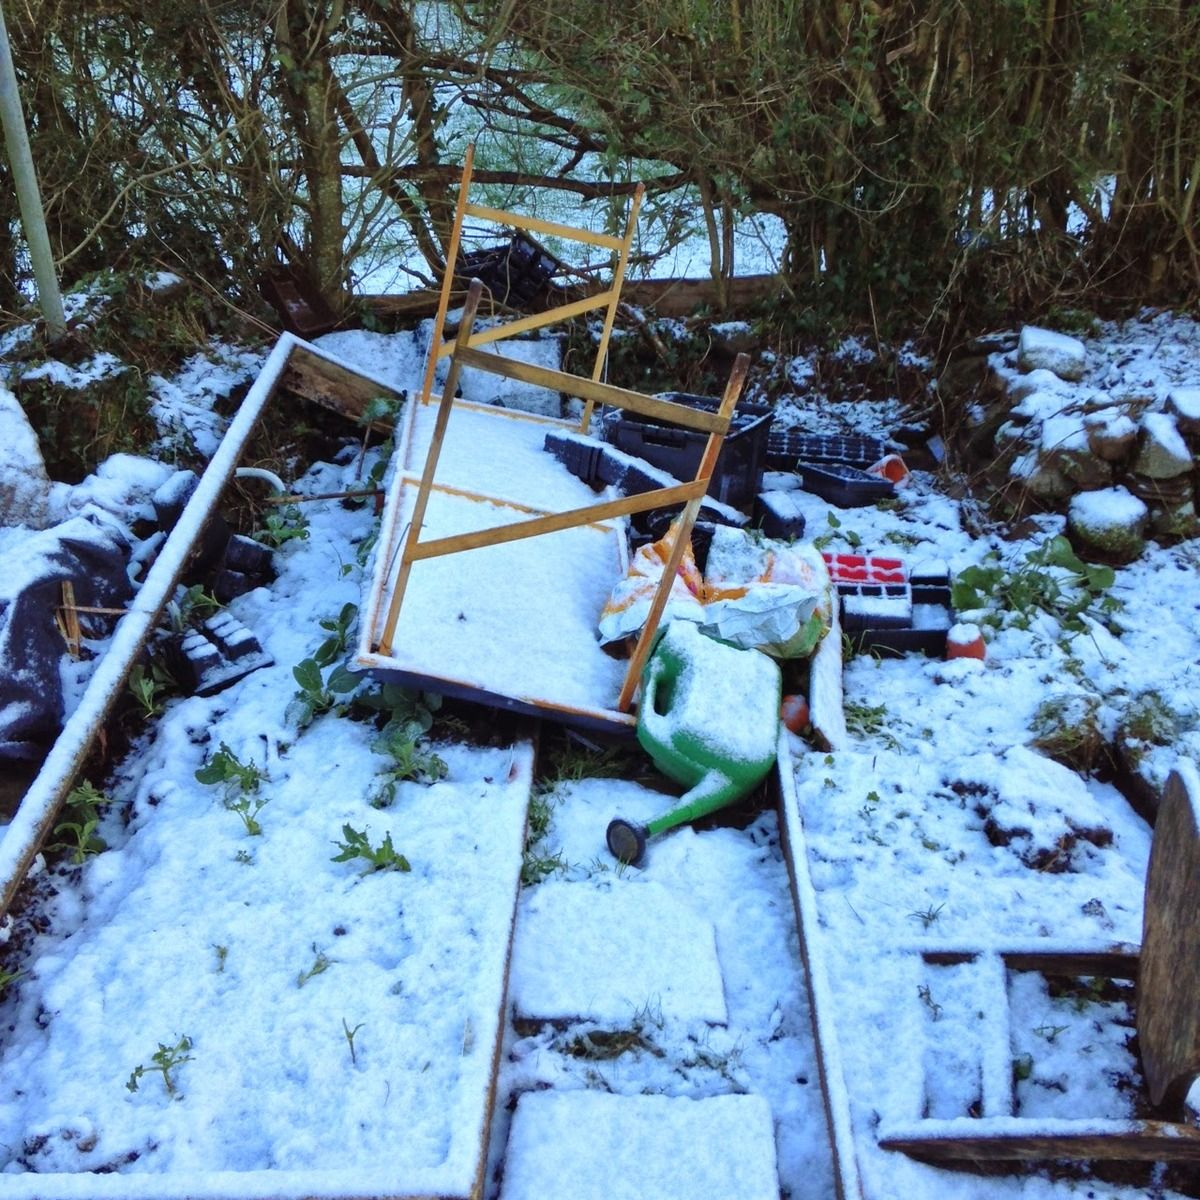 A Polytunnel Disaster #gardening #garden #DIY #home #flowers #roses #nature #landscaping #horticulture